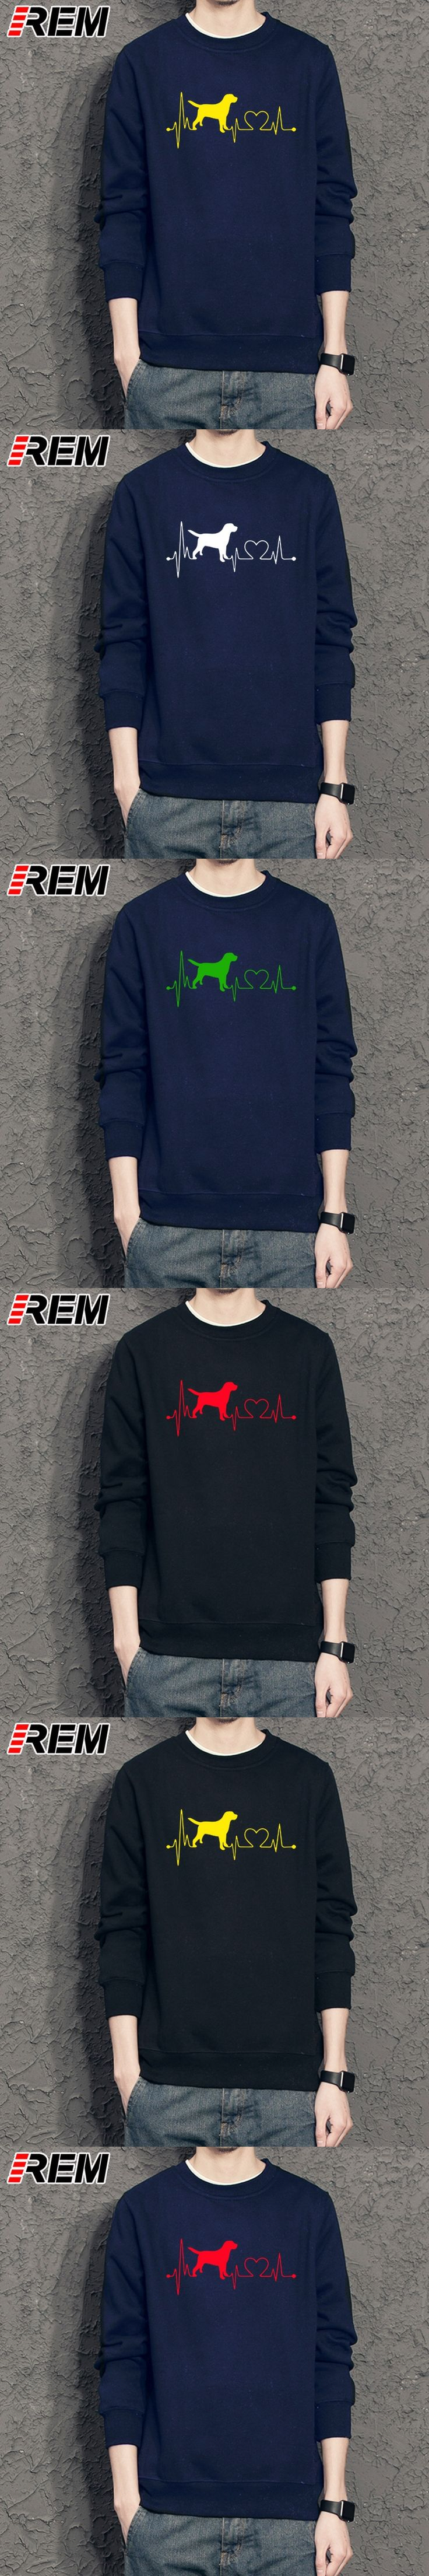 REM Men's Hoodies, Sweatshir Dog Lover Heartbeat Print Men Funny Printed LONG Sleeve Tops Gift Cotton Hoodies, Camisetas